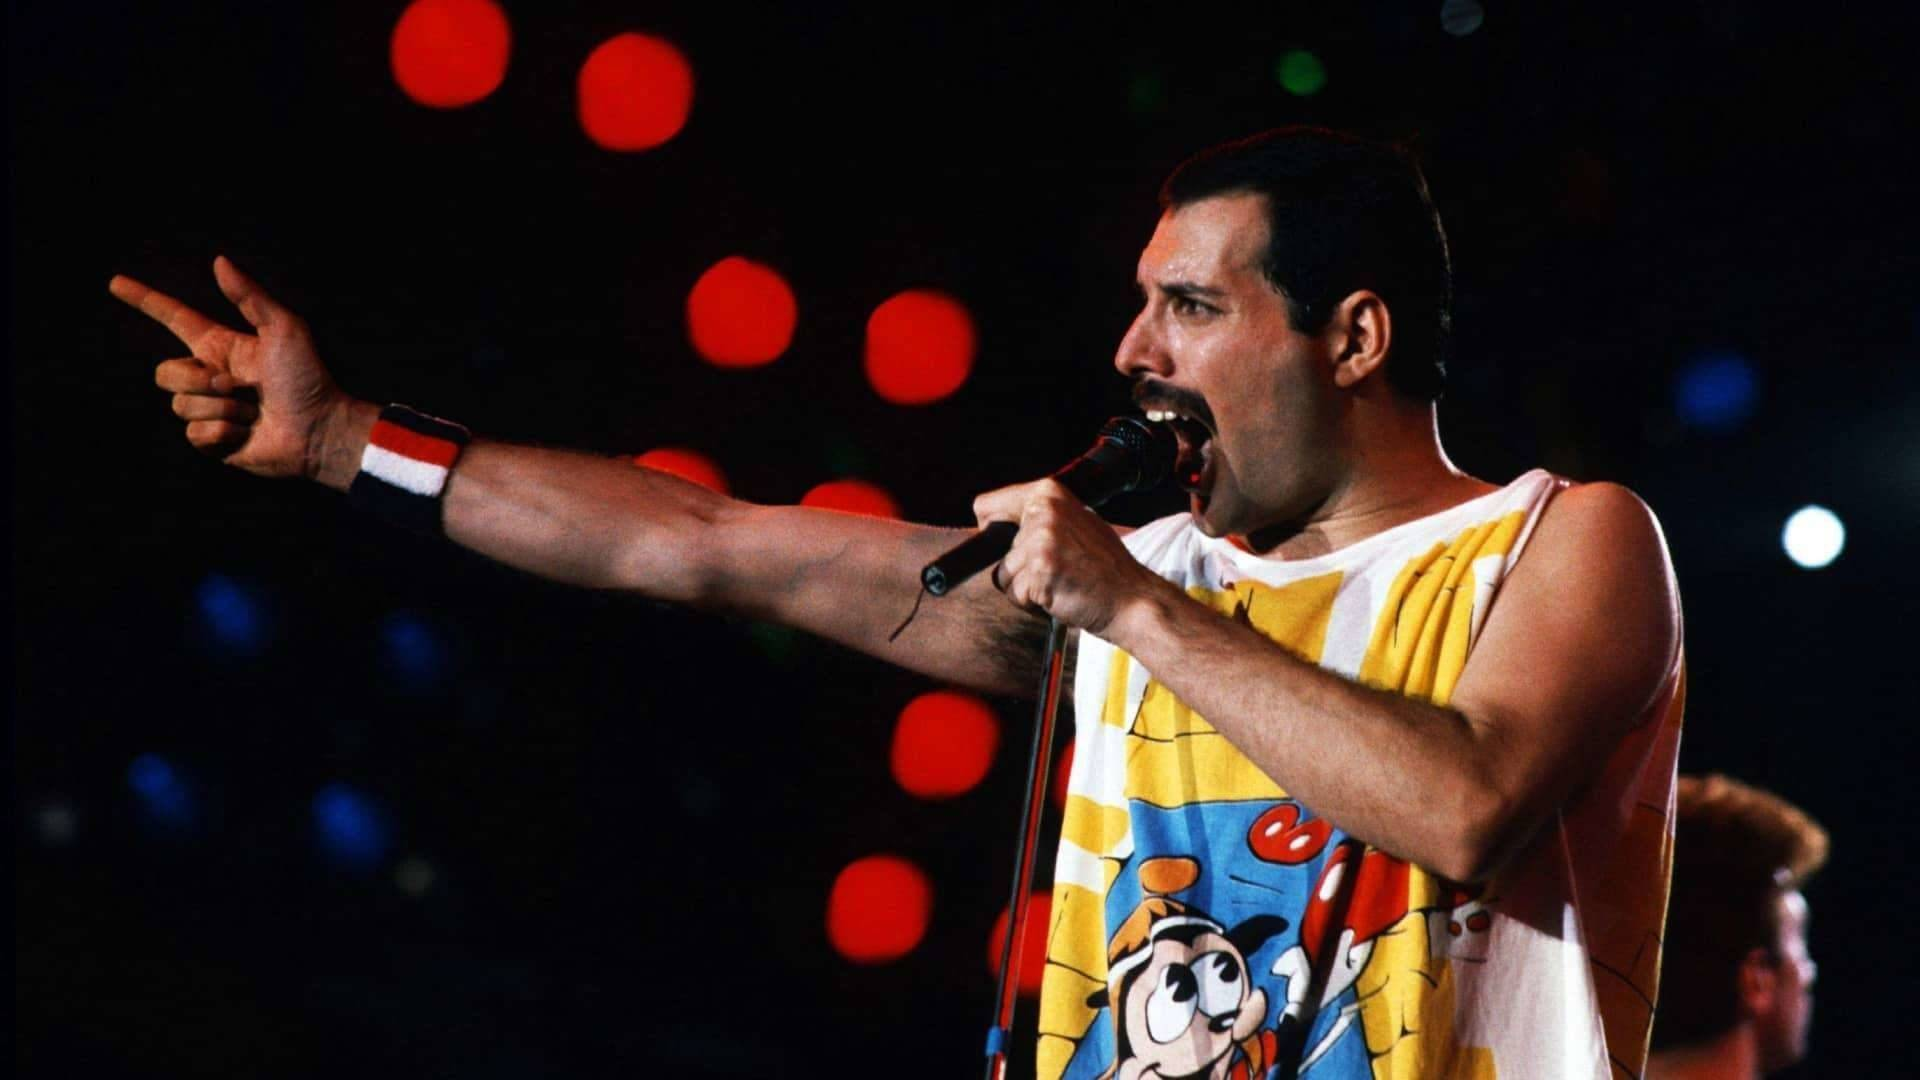 The Freddie Mercury Life Story Like No Other